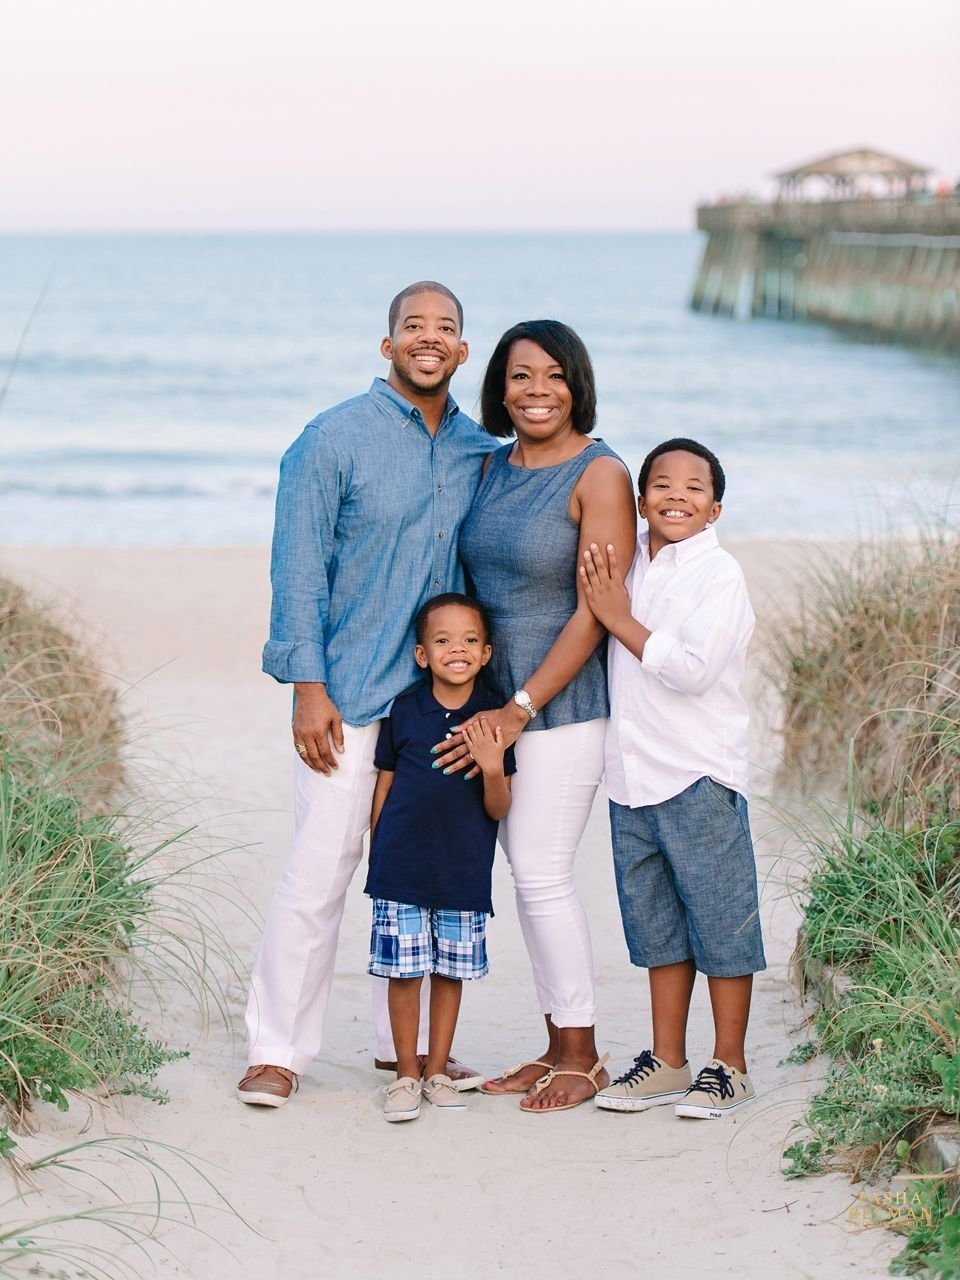 10 Spectacular Family Picture Ideas What To Wear image result for family photos at the beach family photo 1 2020